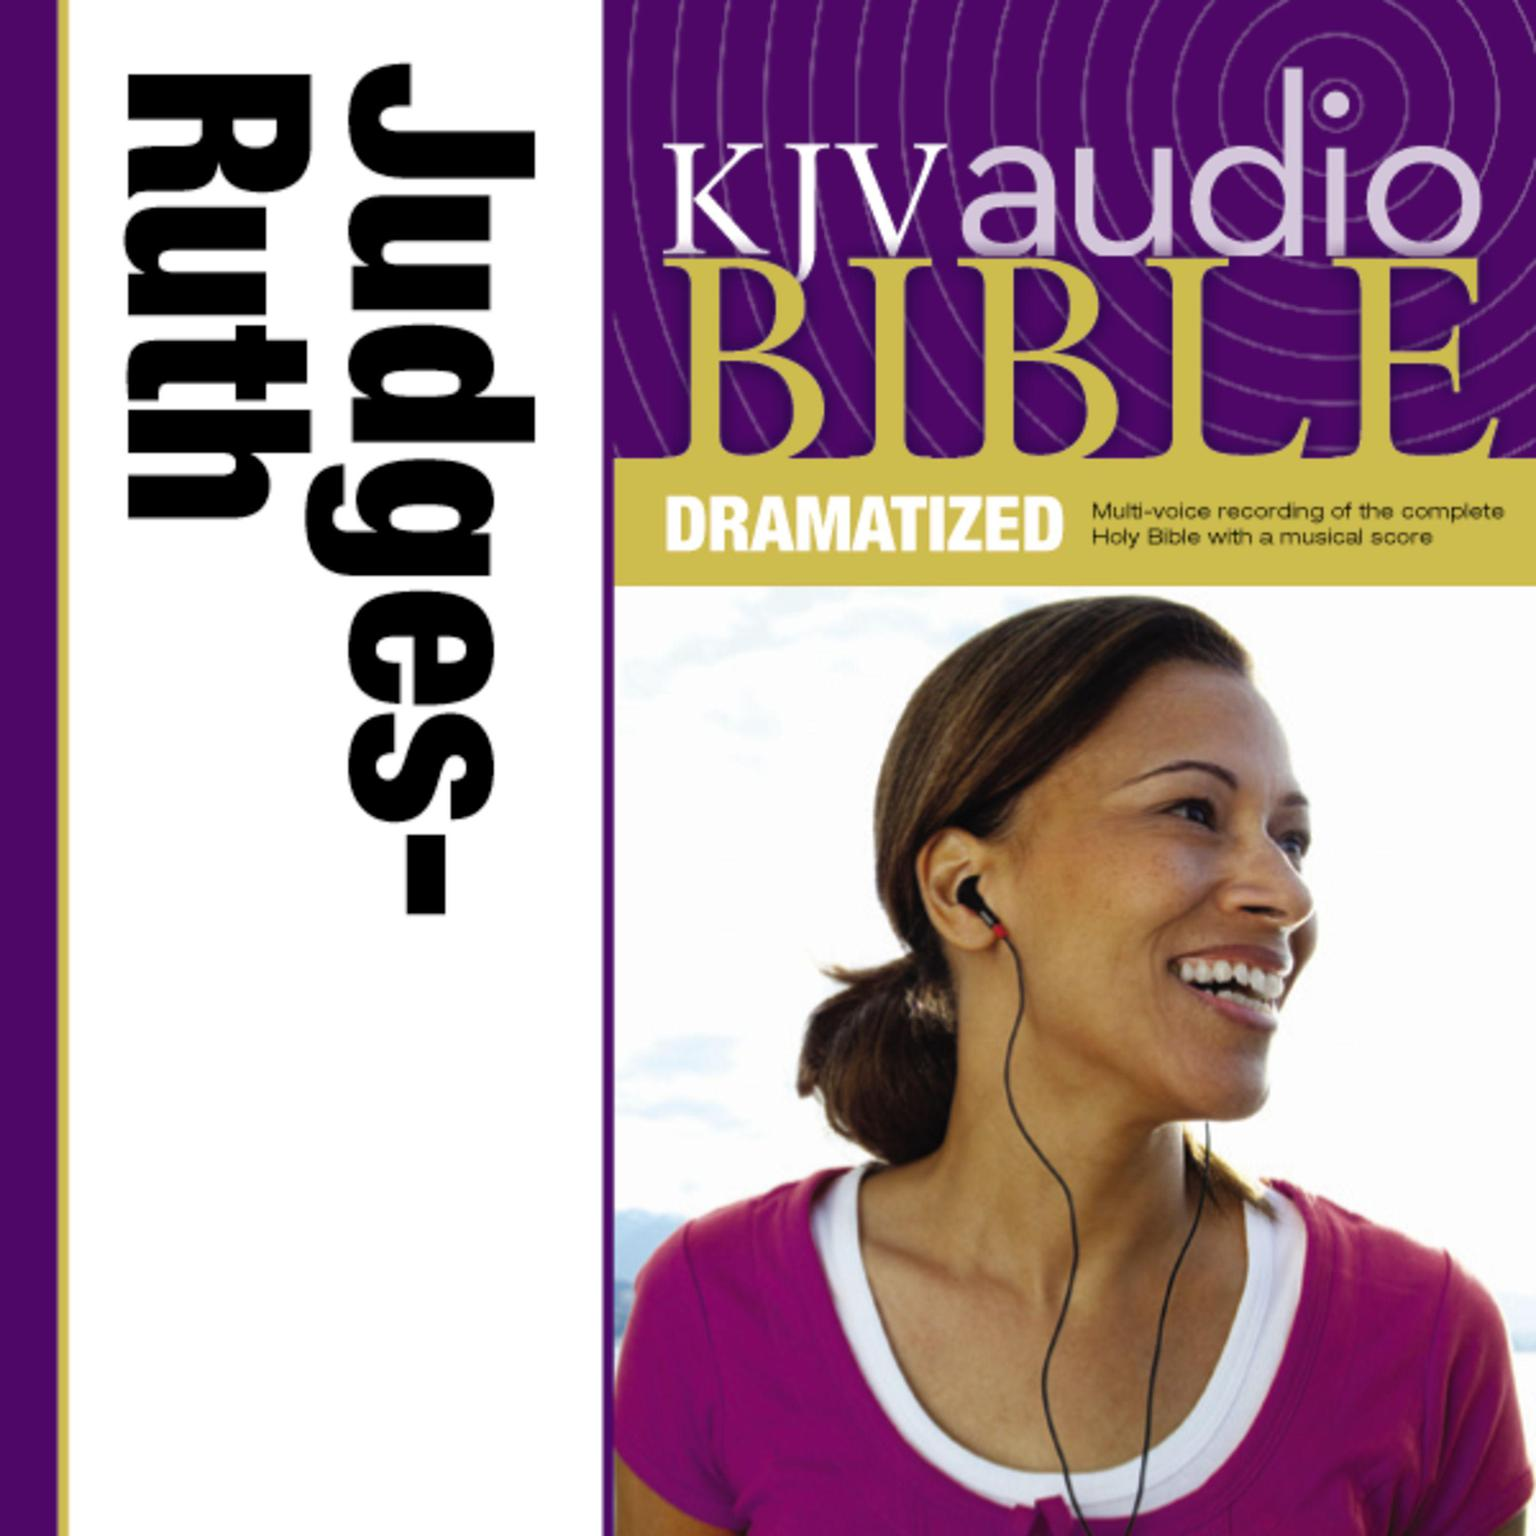 Printable KJV, Audio Bible, Dramatized: Judges and Ruth, Audio Download Audiobook Cover Art